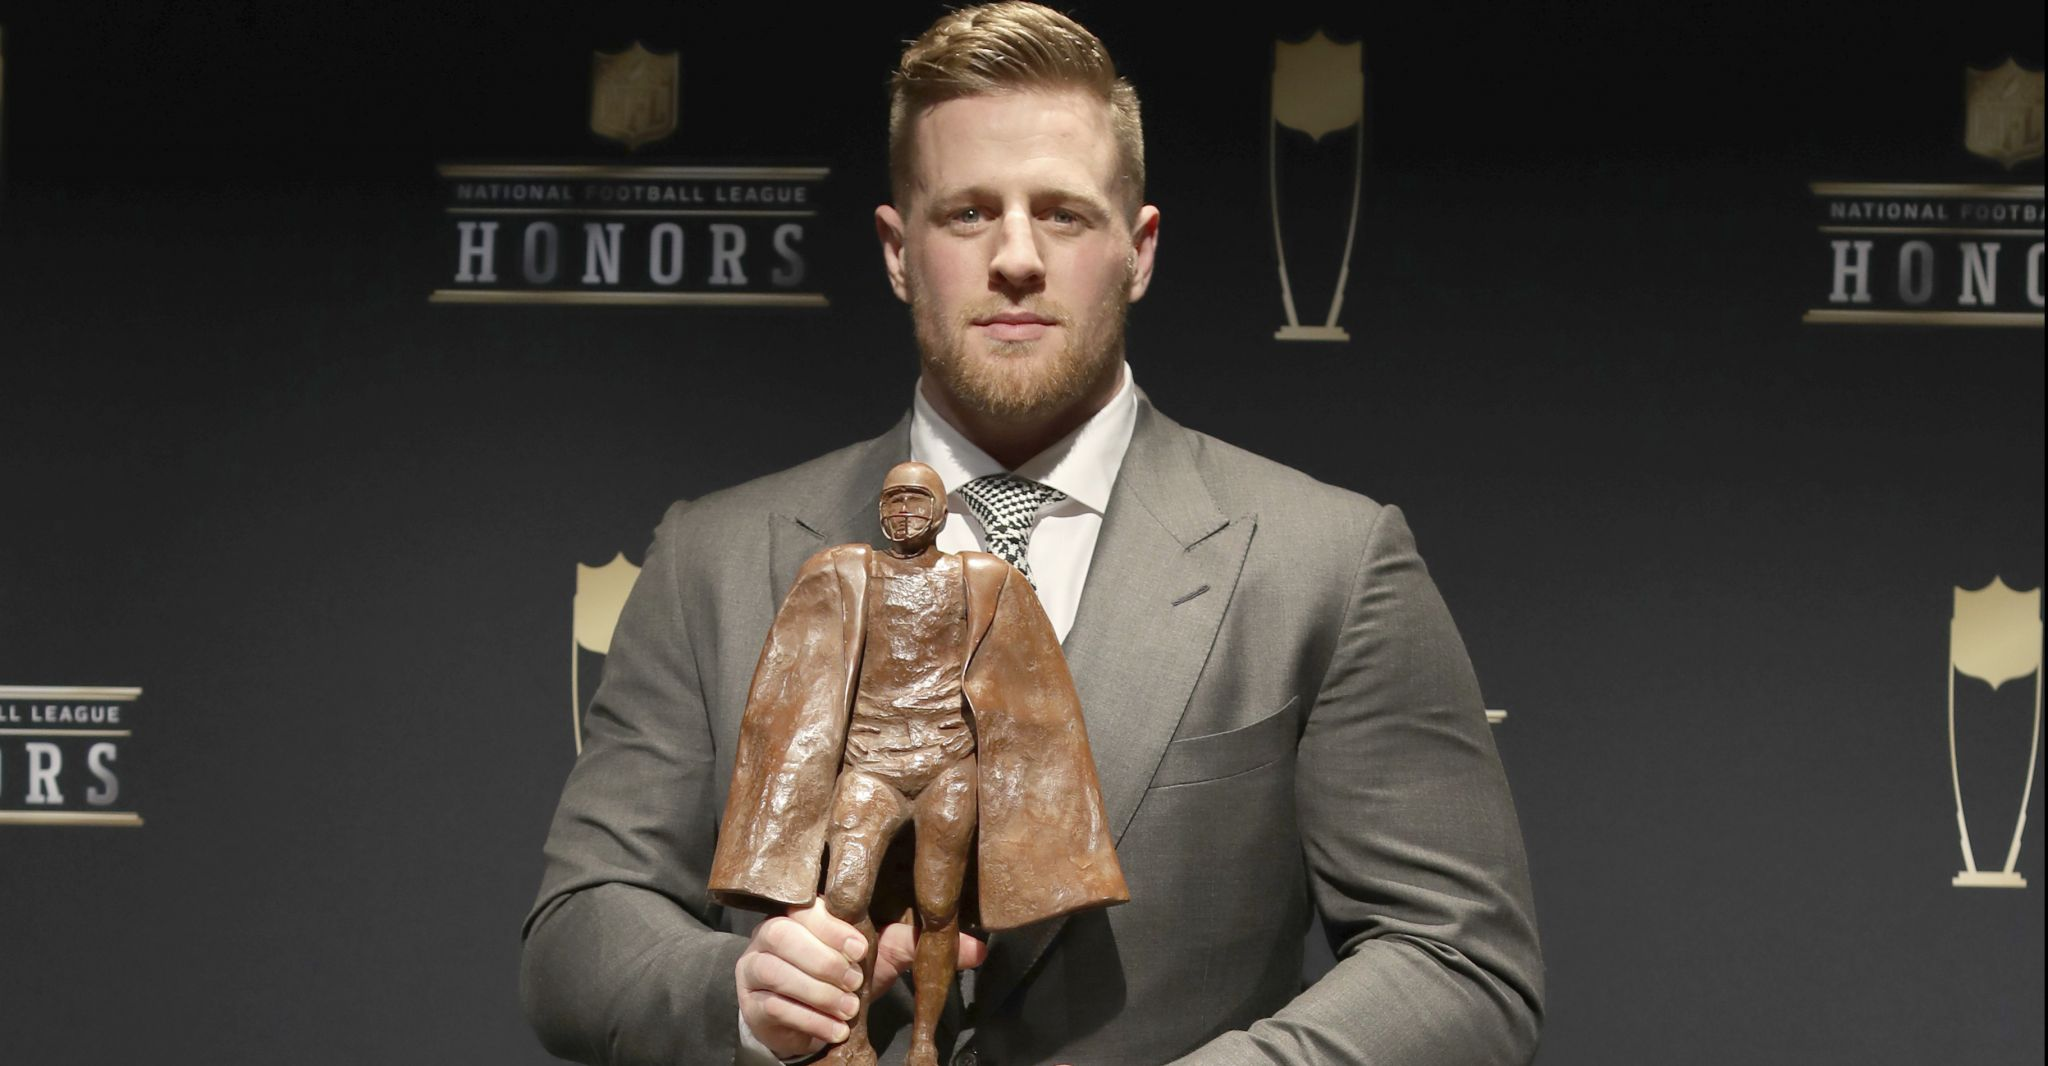 Jj Watts Acceptance Speech For Nfl Man Of The Year Houston